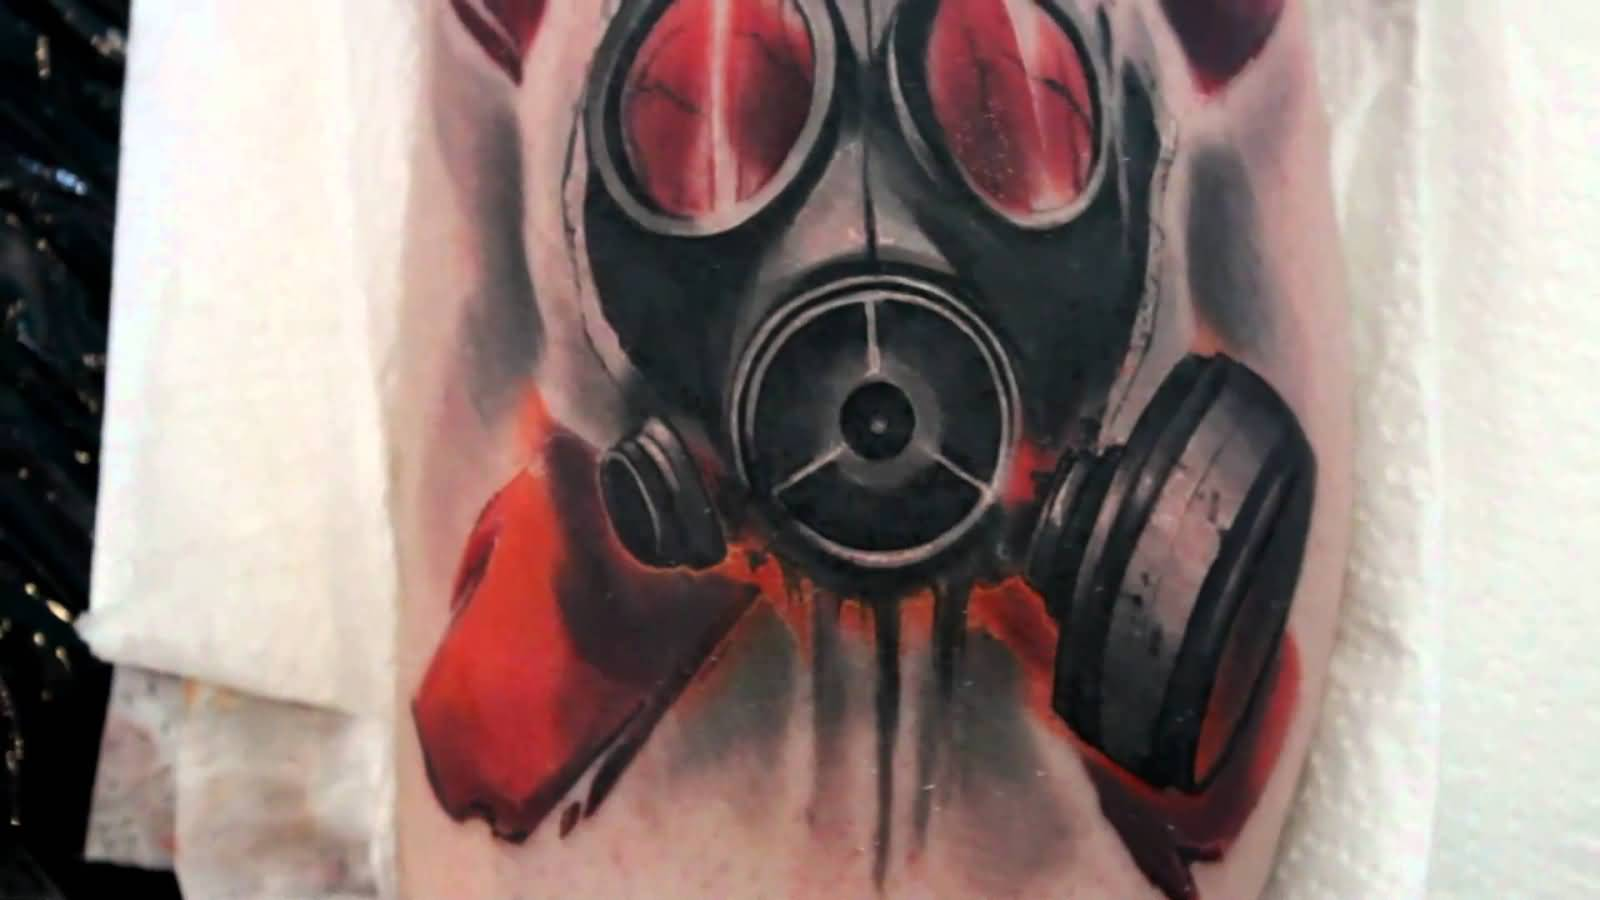 44 best gas mask tattoos collection - Gask Mask Tattoo Done By Kazik Kosa 44 Best Gas Mask Tattoos Collection